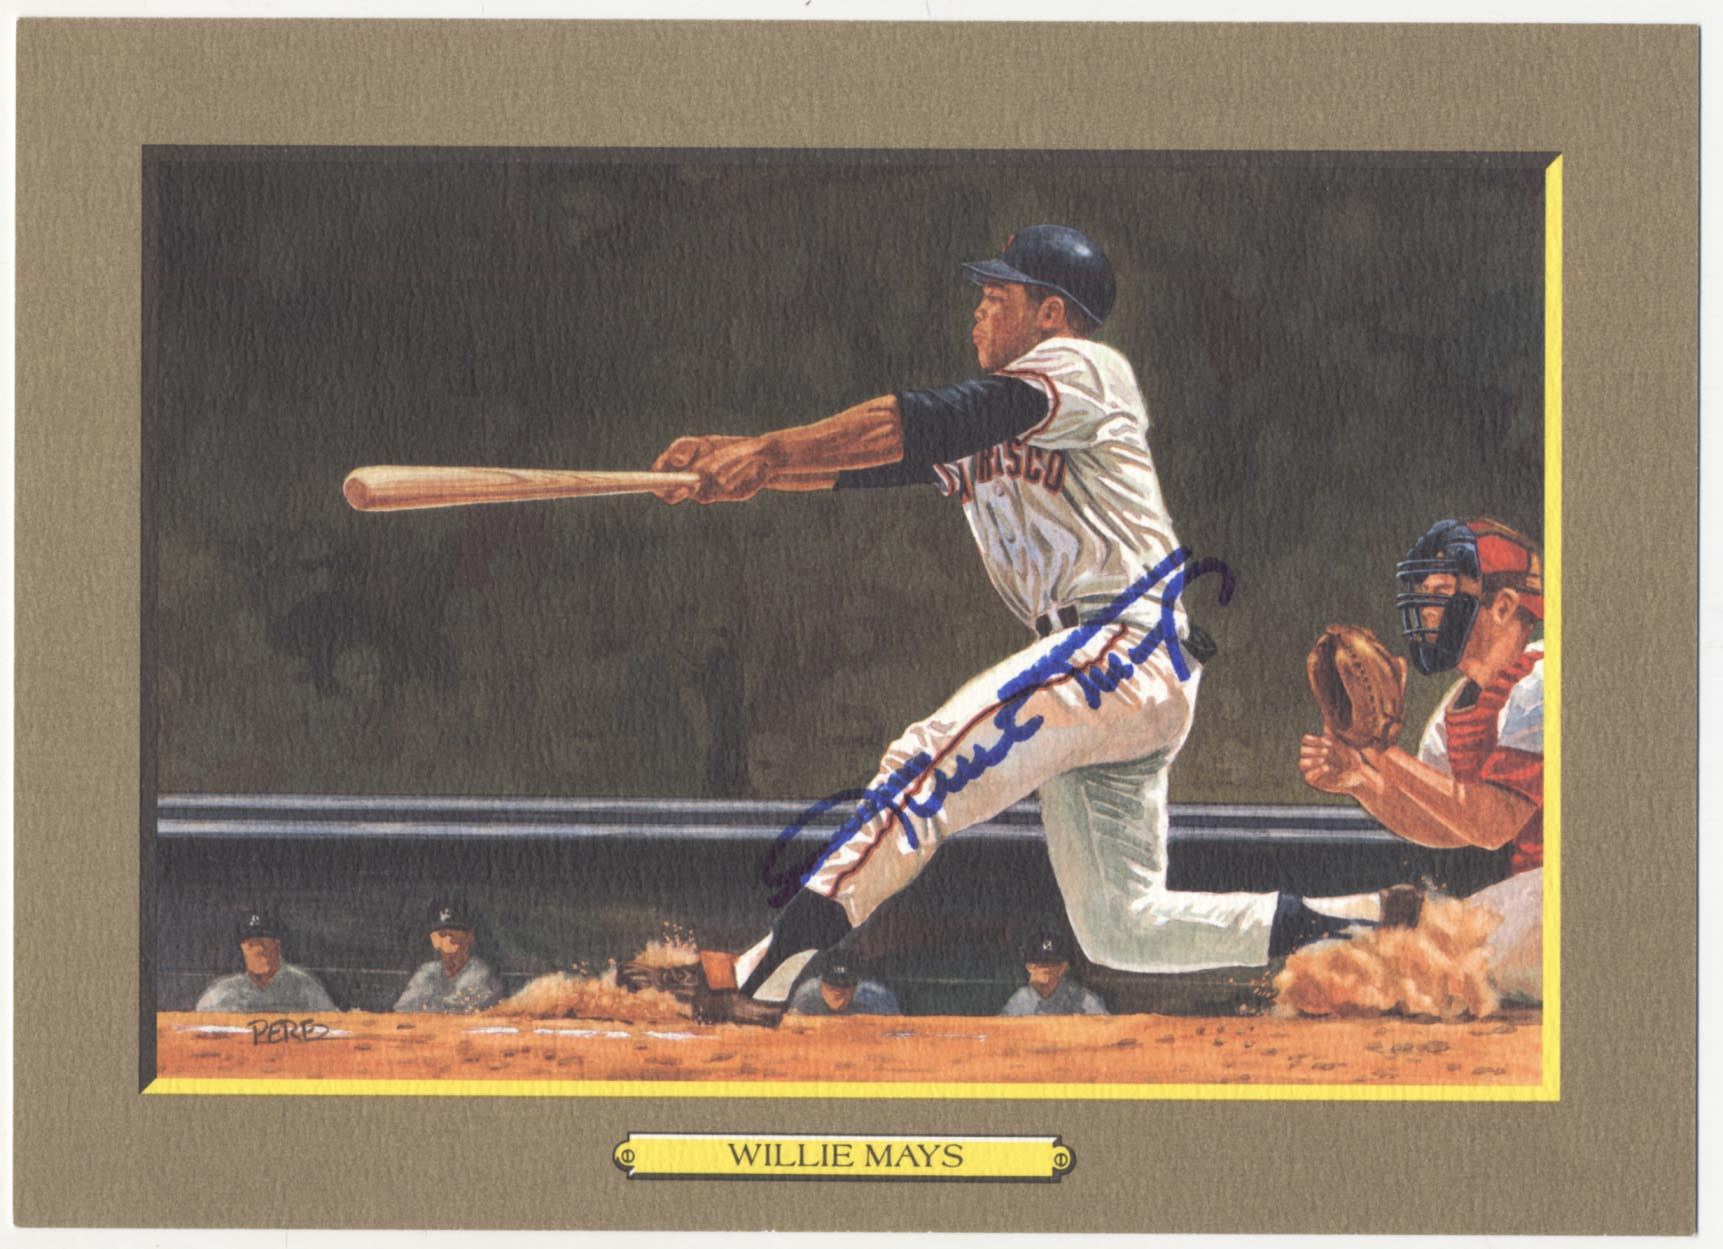 1985 Perez Steele Greatest Moments 65 Willie Mays 9.5